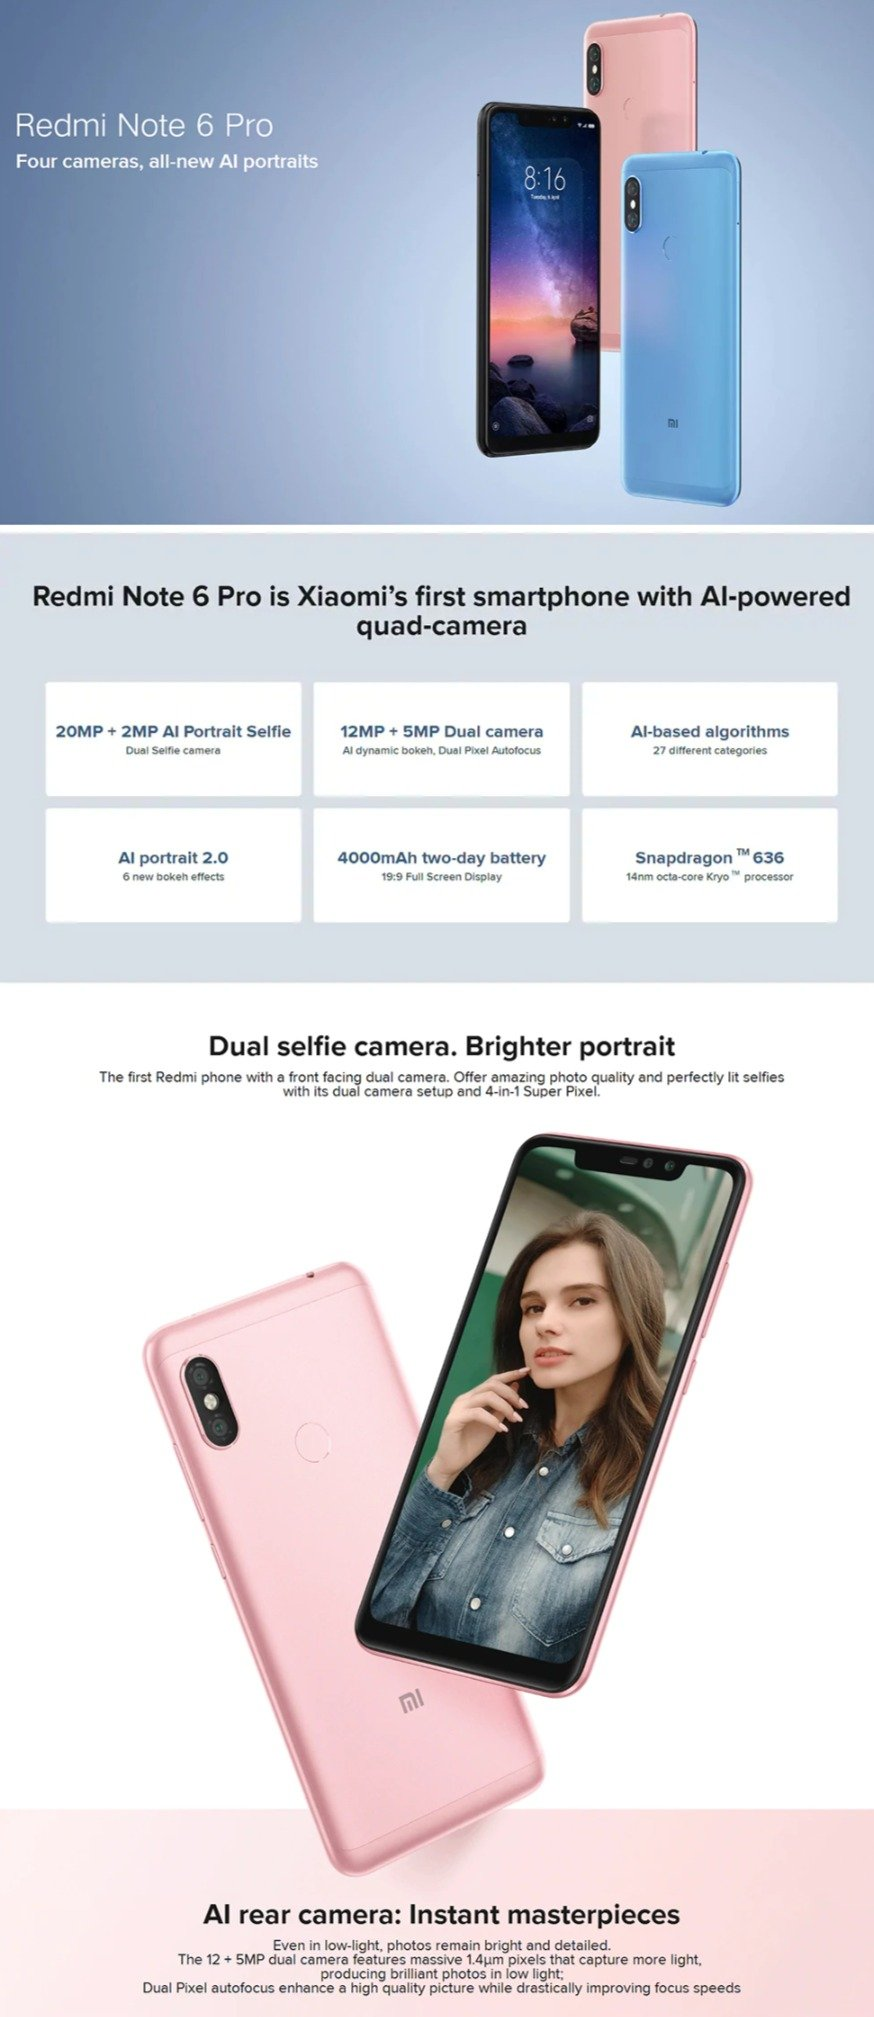 Black Friday Xiaomi Sale - Redmi Note 6 Pro